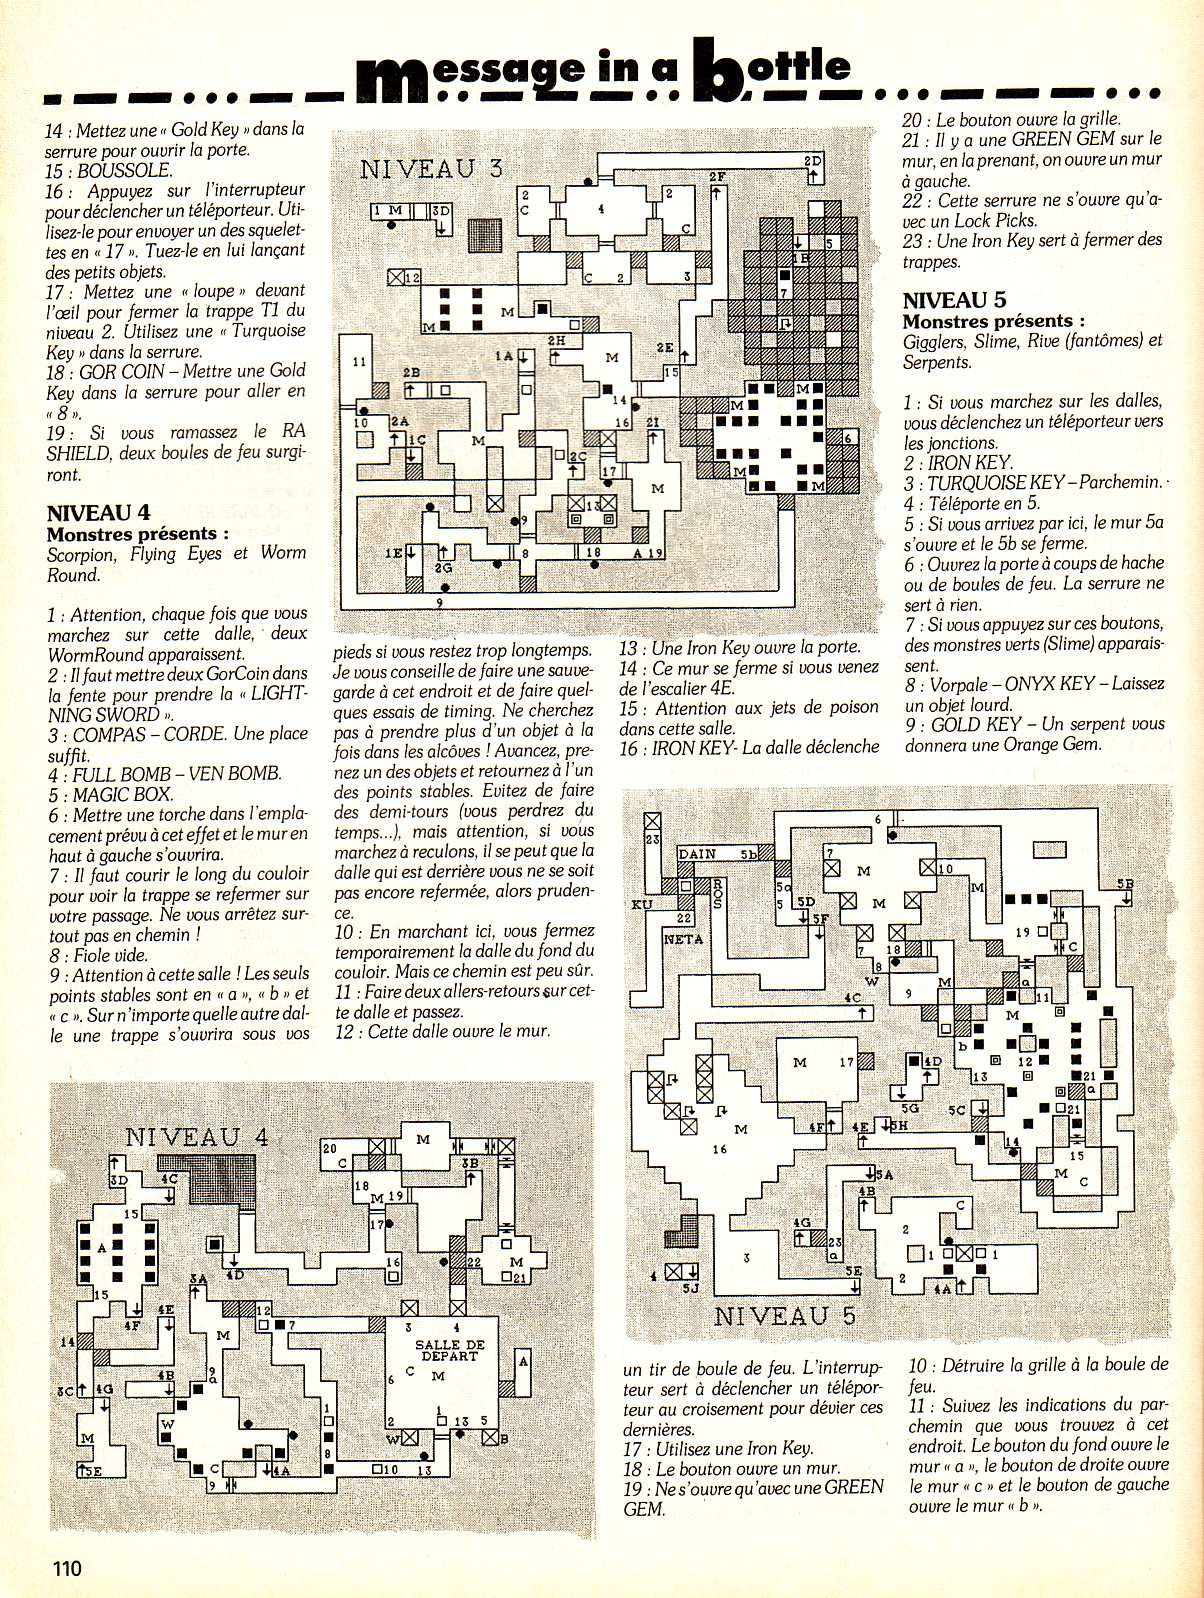 Chaos Strikes Back Guide published in French magazine 'Tilt', Issue #99, February 1992, Page 110